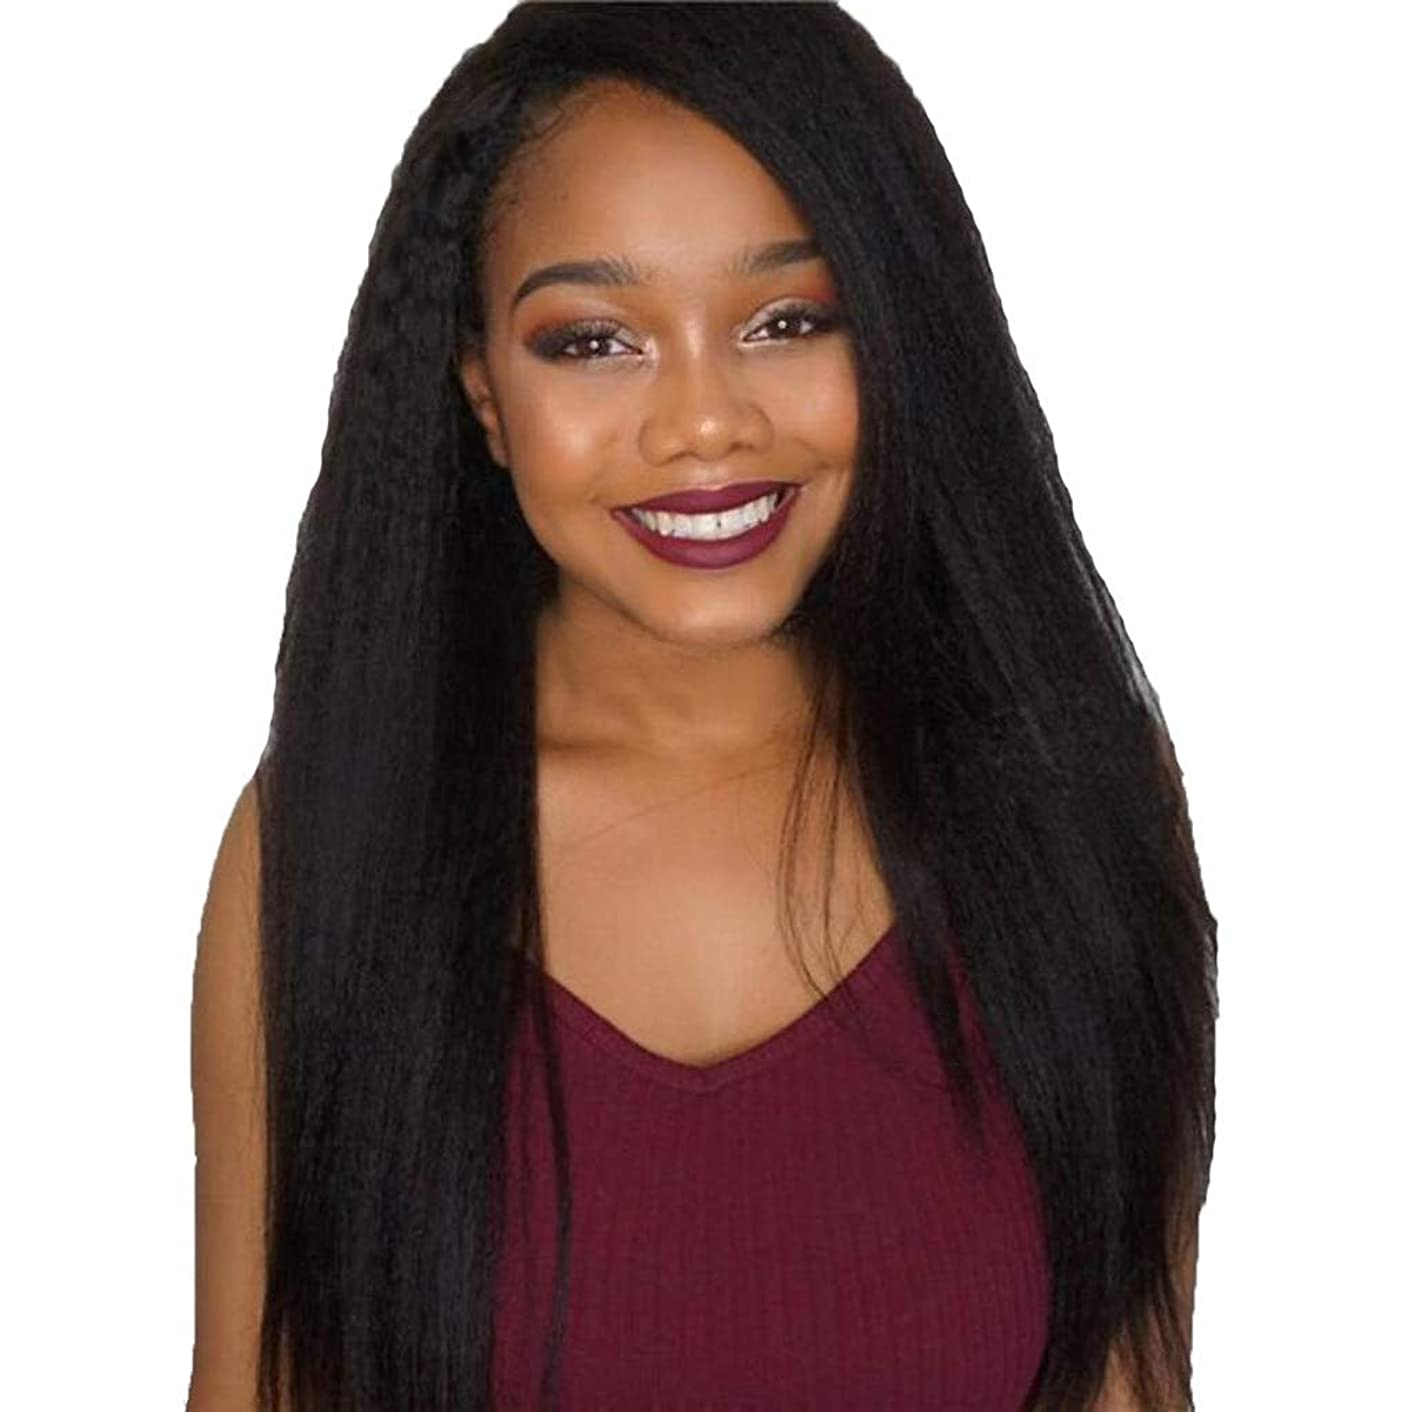 26inch Women's Silky Long Straight Black Wig Heat Resistant Synthetic Wig With Bangs Hair Wig for Women (a)